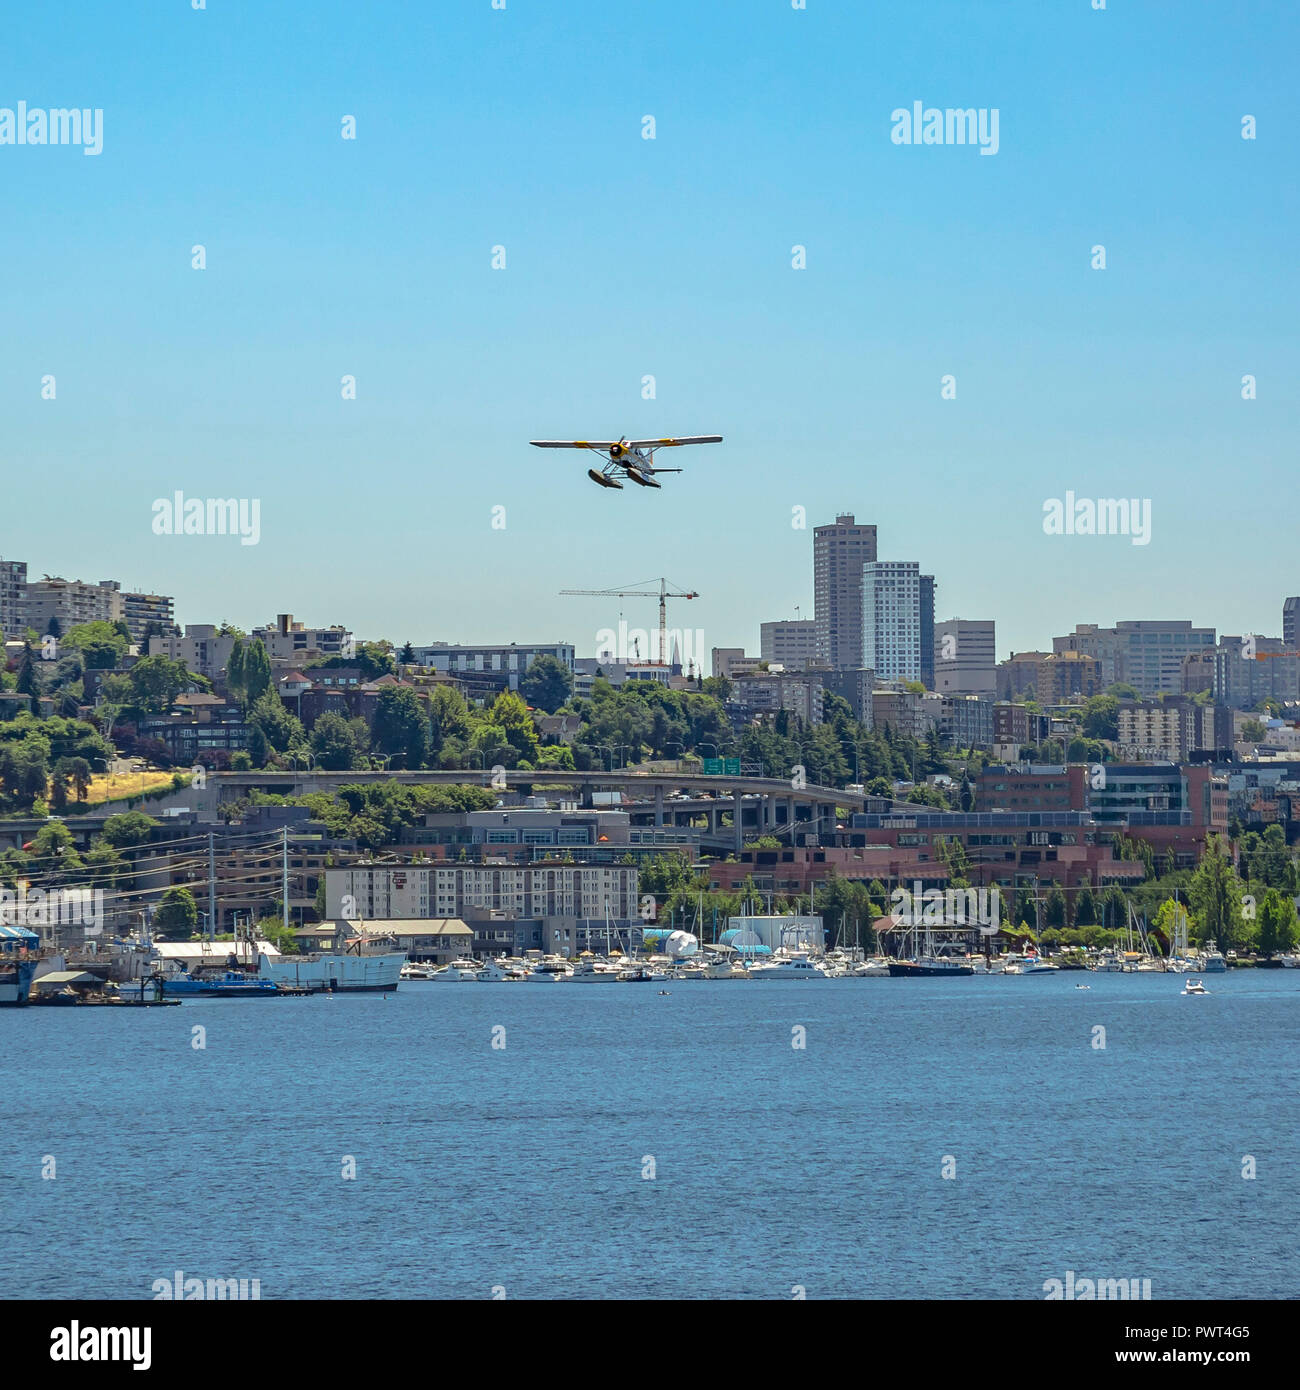 Float plane over seaport city and Union Lake - Stock Image